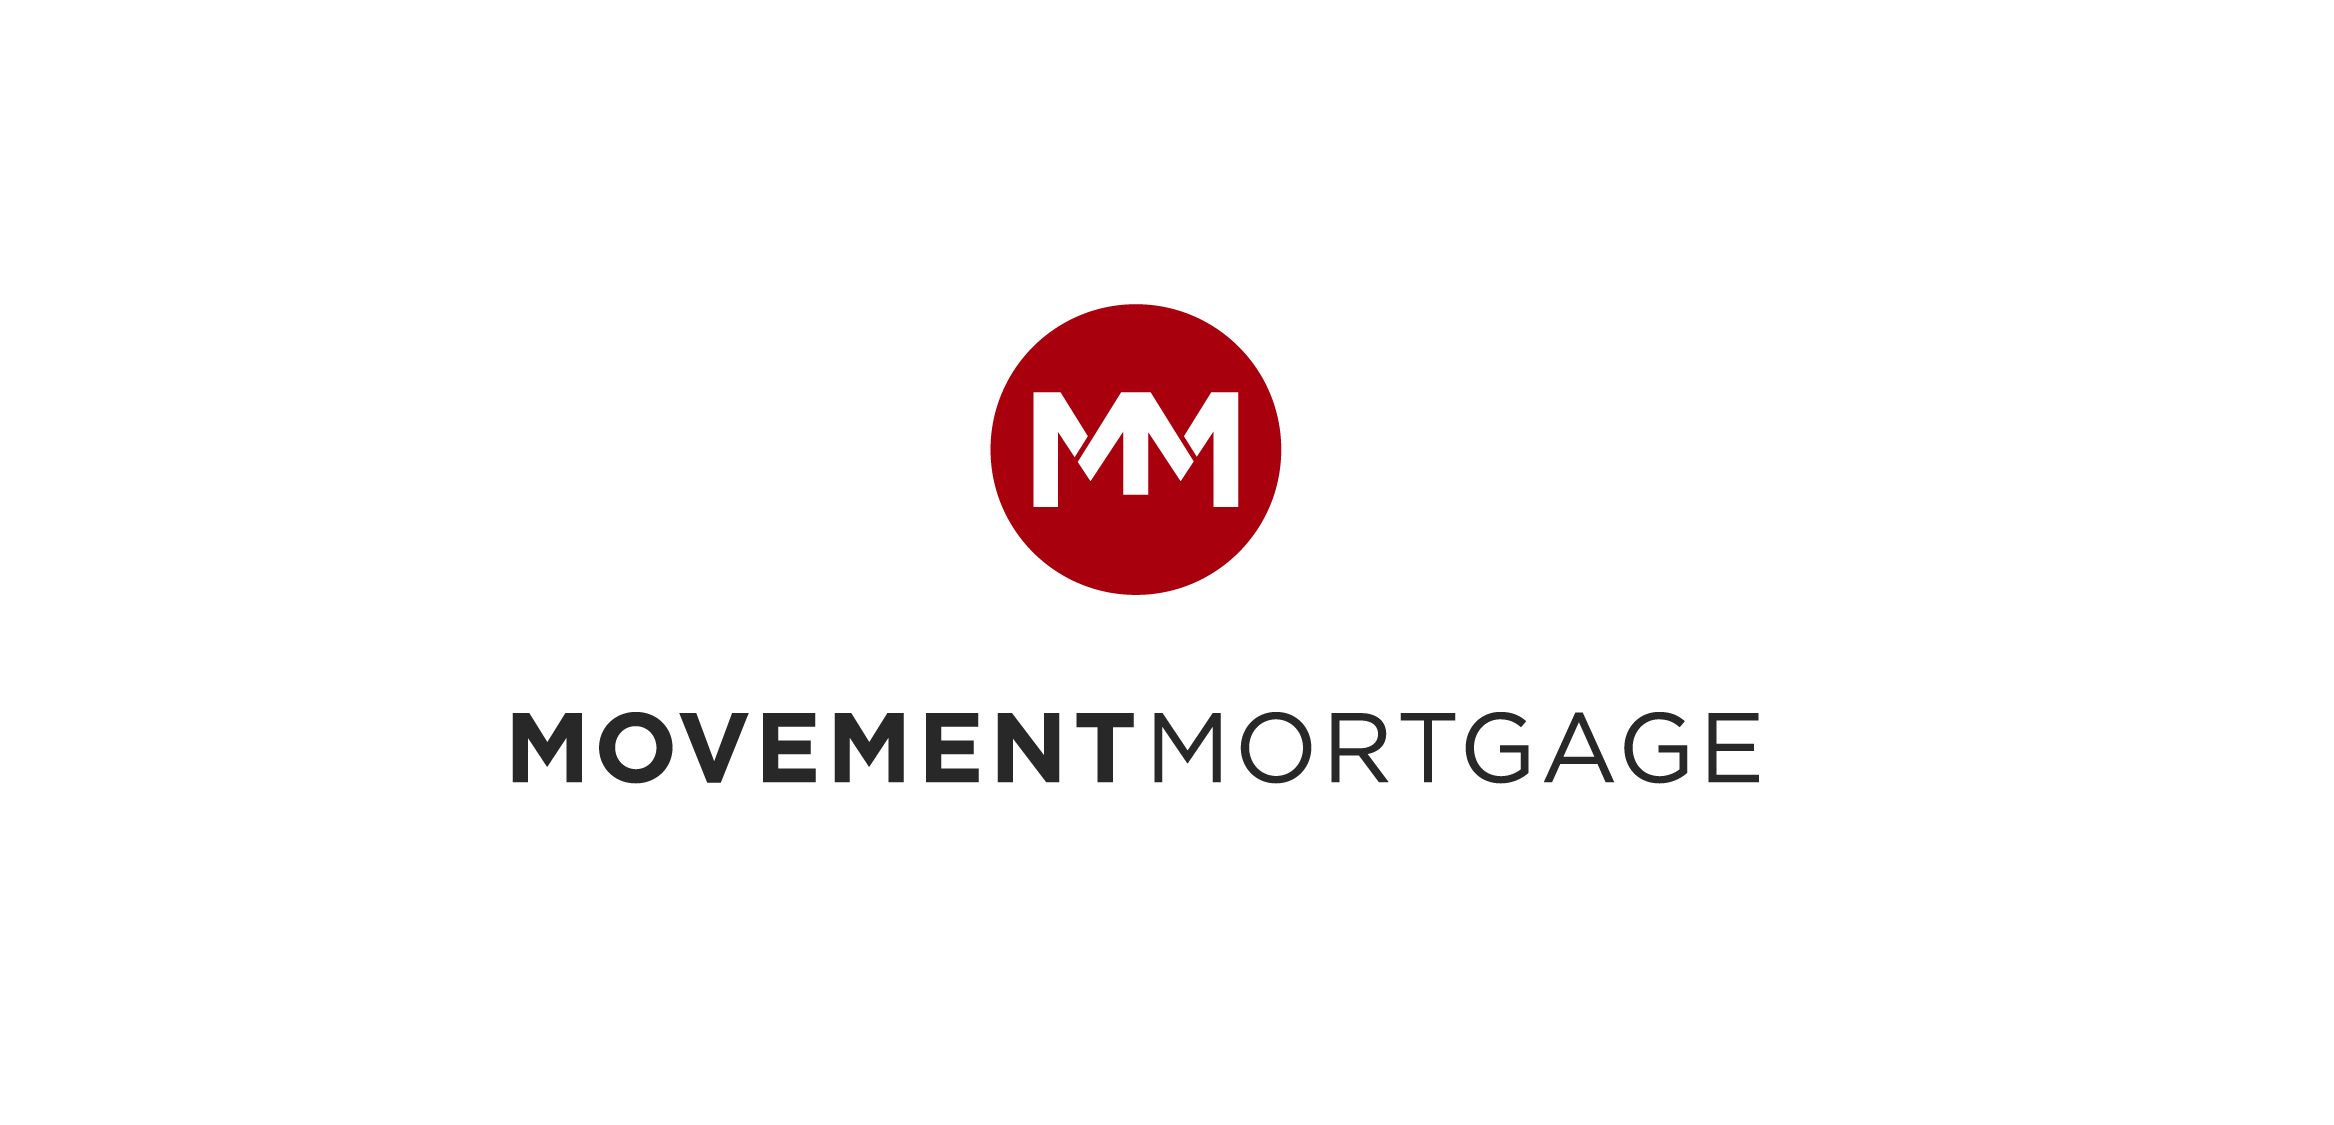 Movement Mortgage - Start-finish Fred.jpg